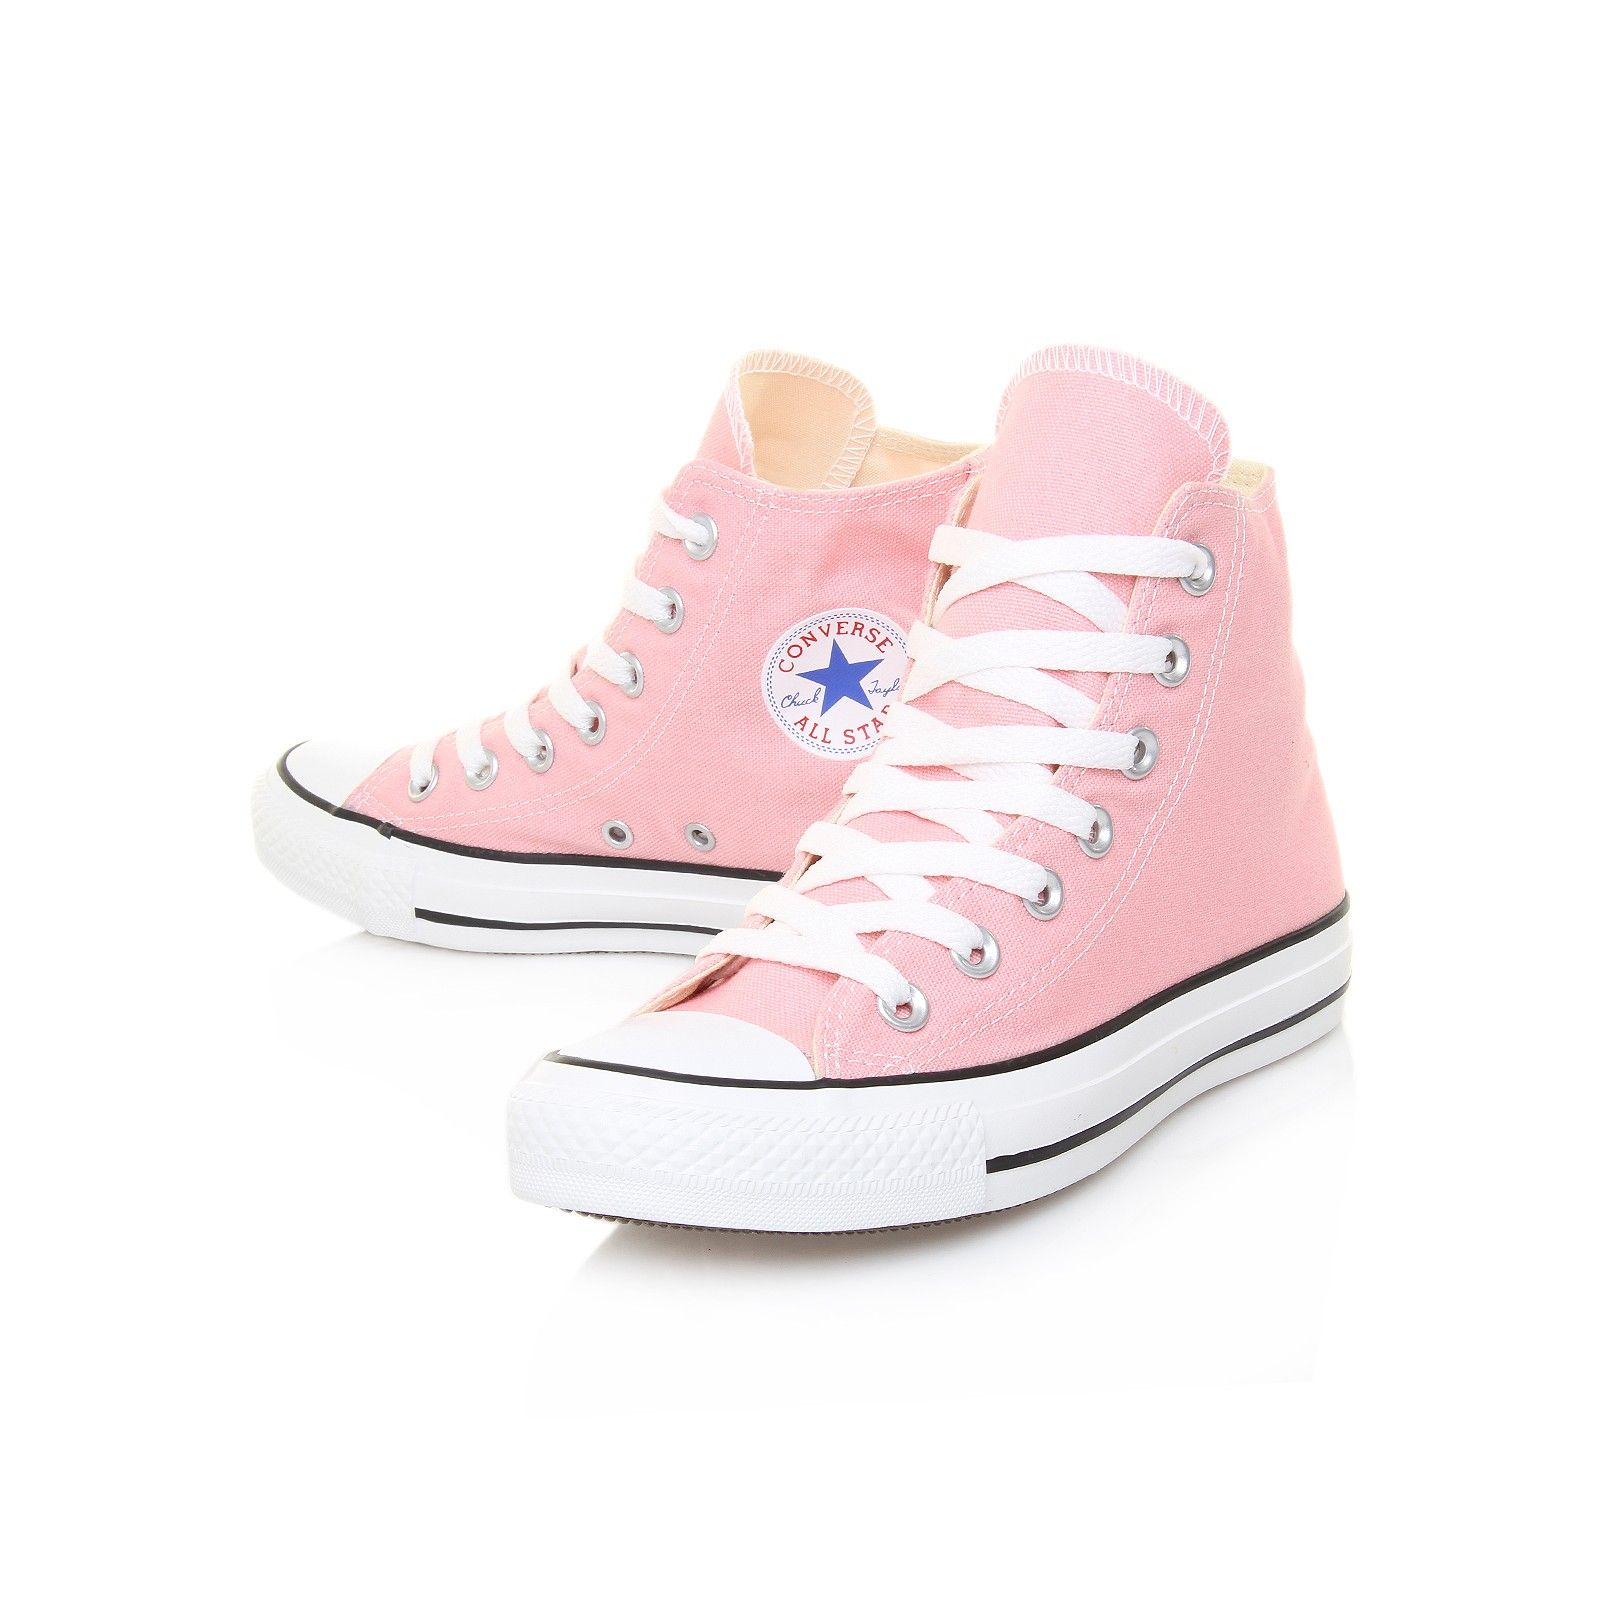 chuck taylor all star hi pale pink converse shoe